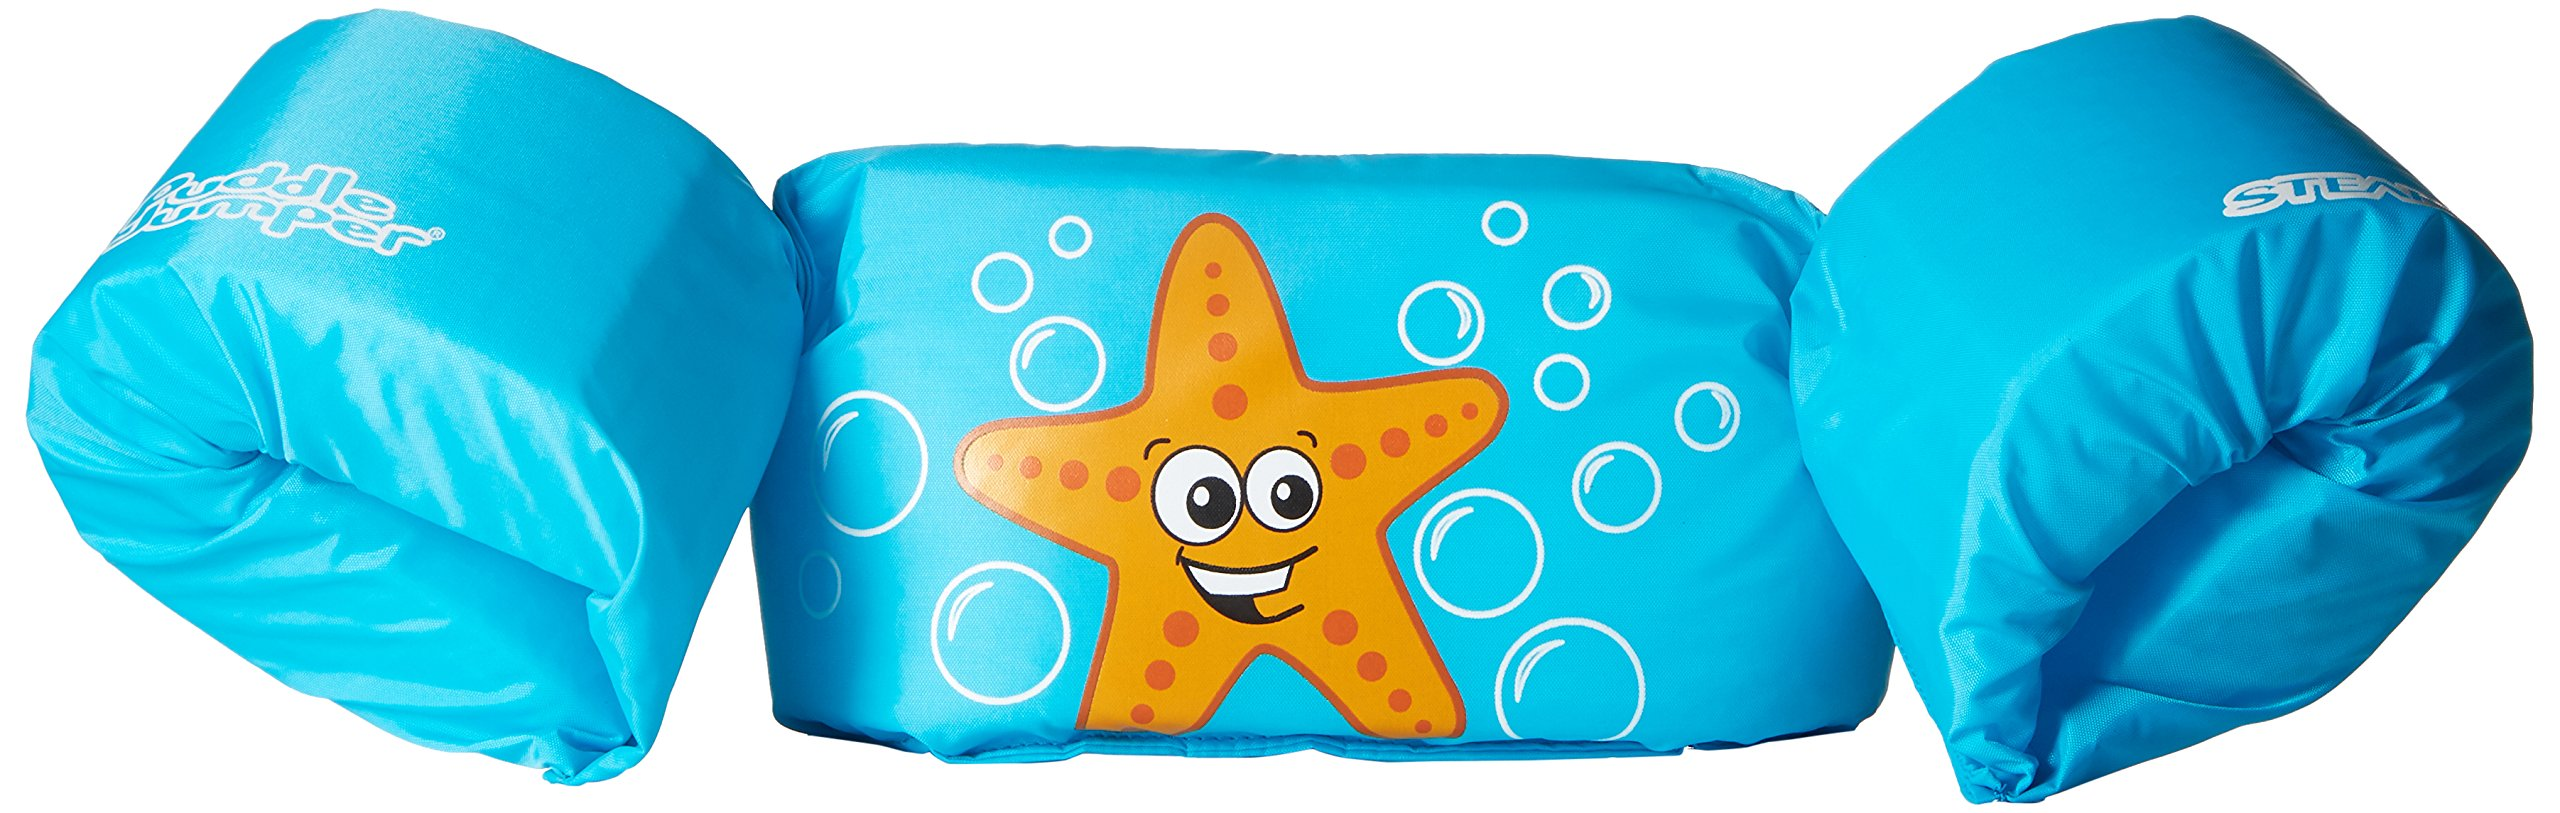 Stearns 3000002180 Puddle Jumper Child Life Jacket, Blue Starfish